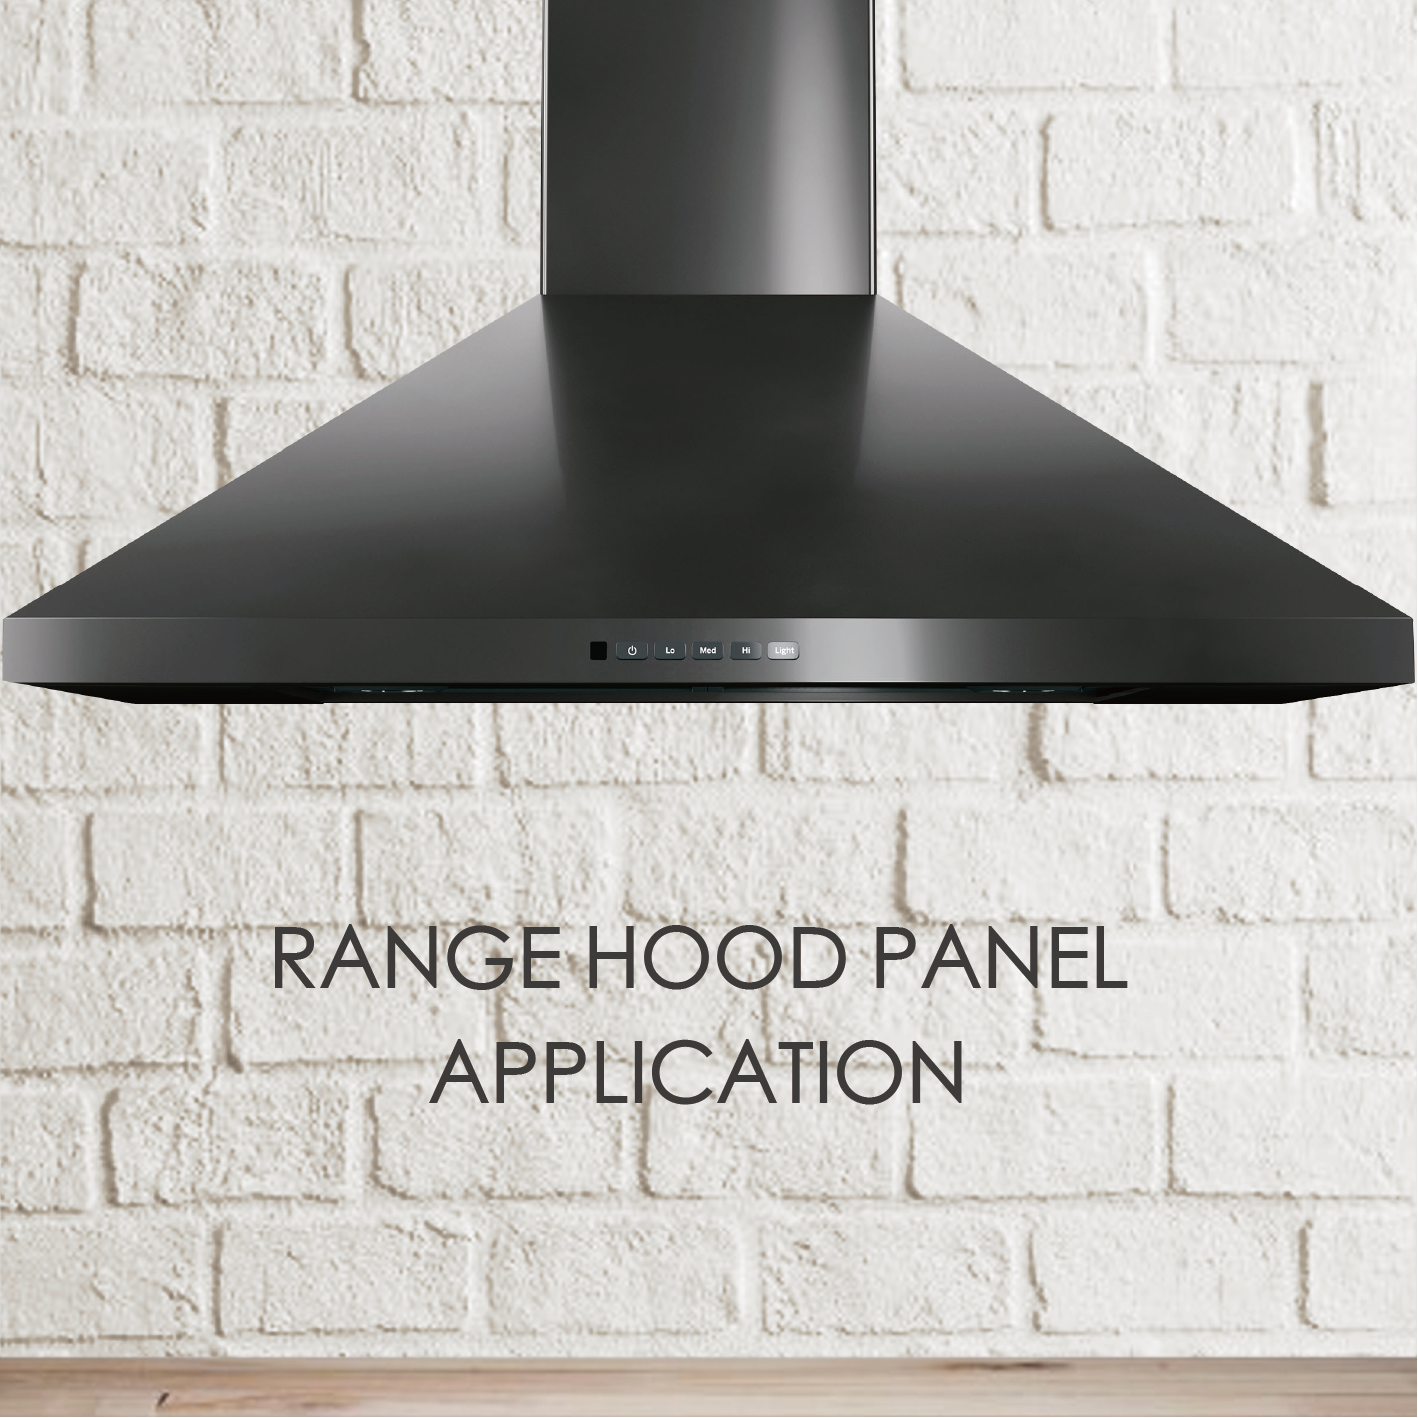 The use of anti-fingerprint stainless steel to make the range hood can increase the aesthetics and easy maintenance